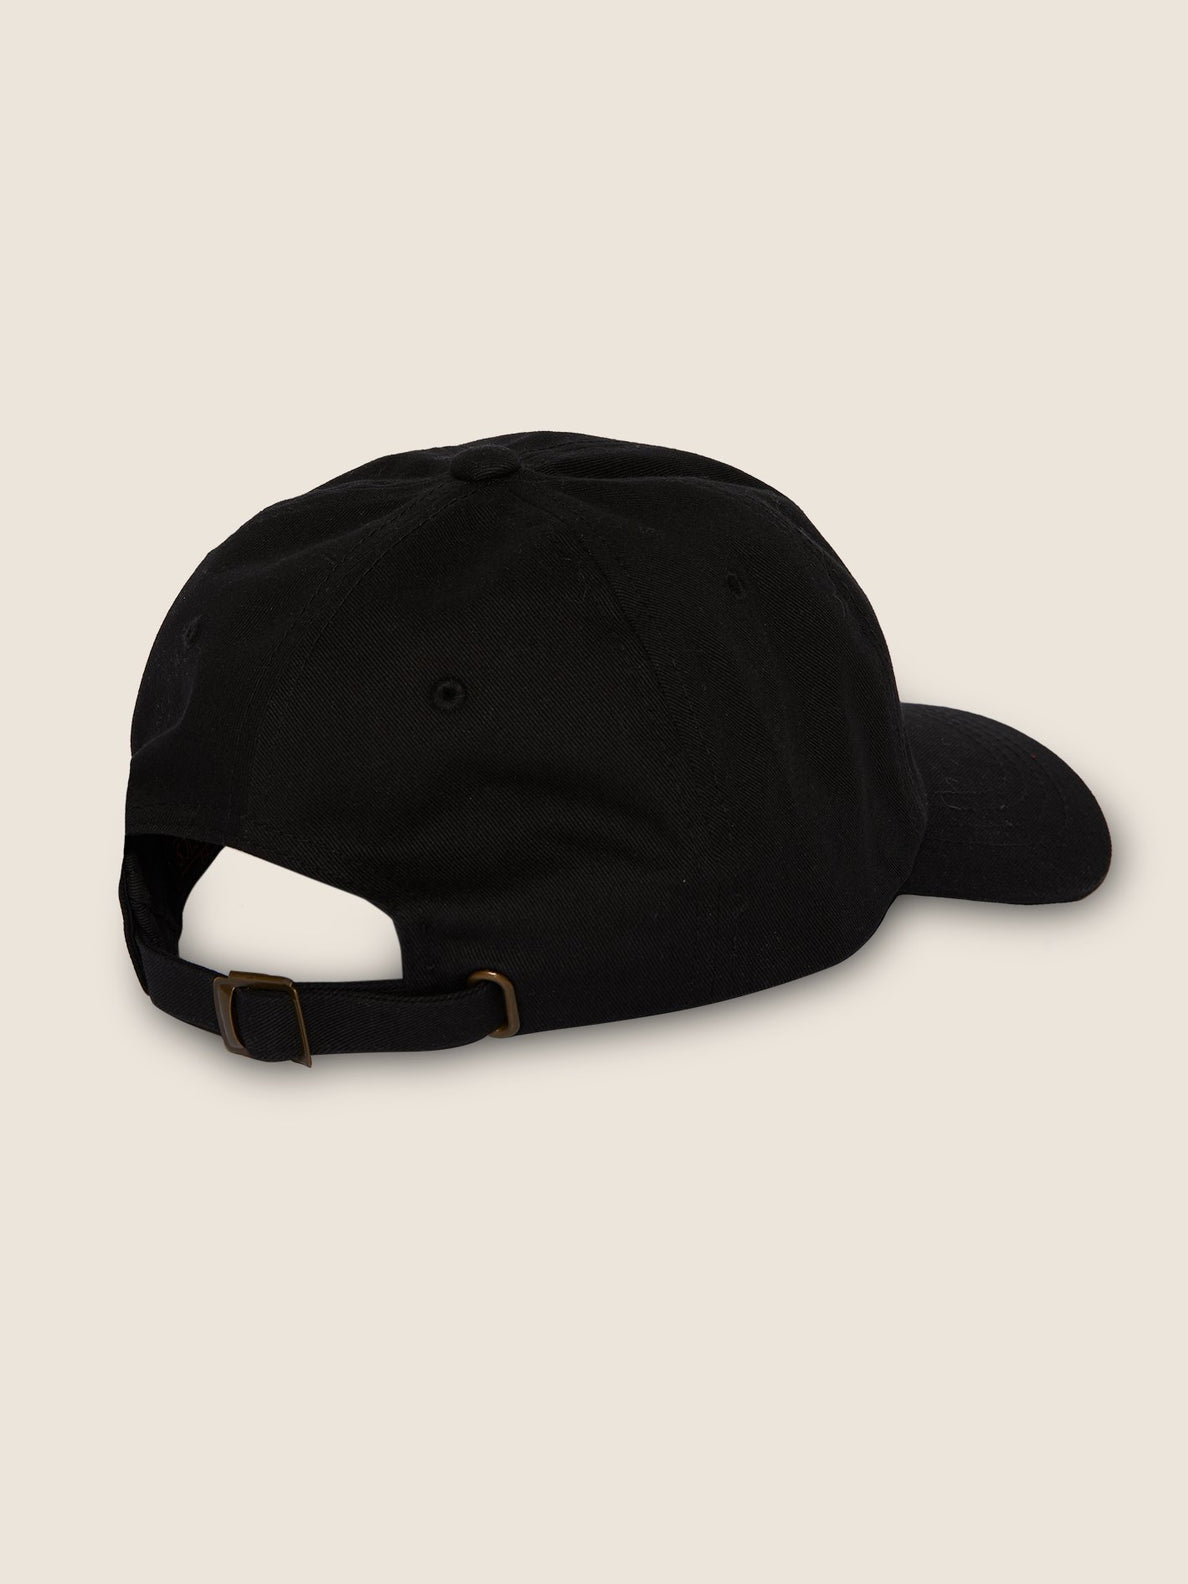 New Shield Dad Hat In Black, Back View